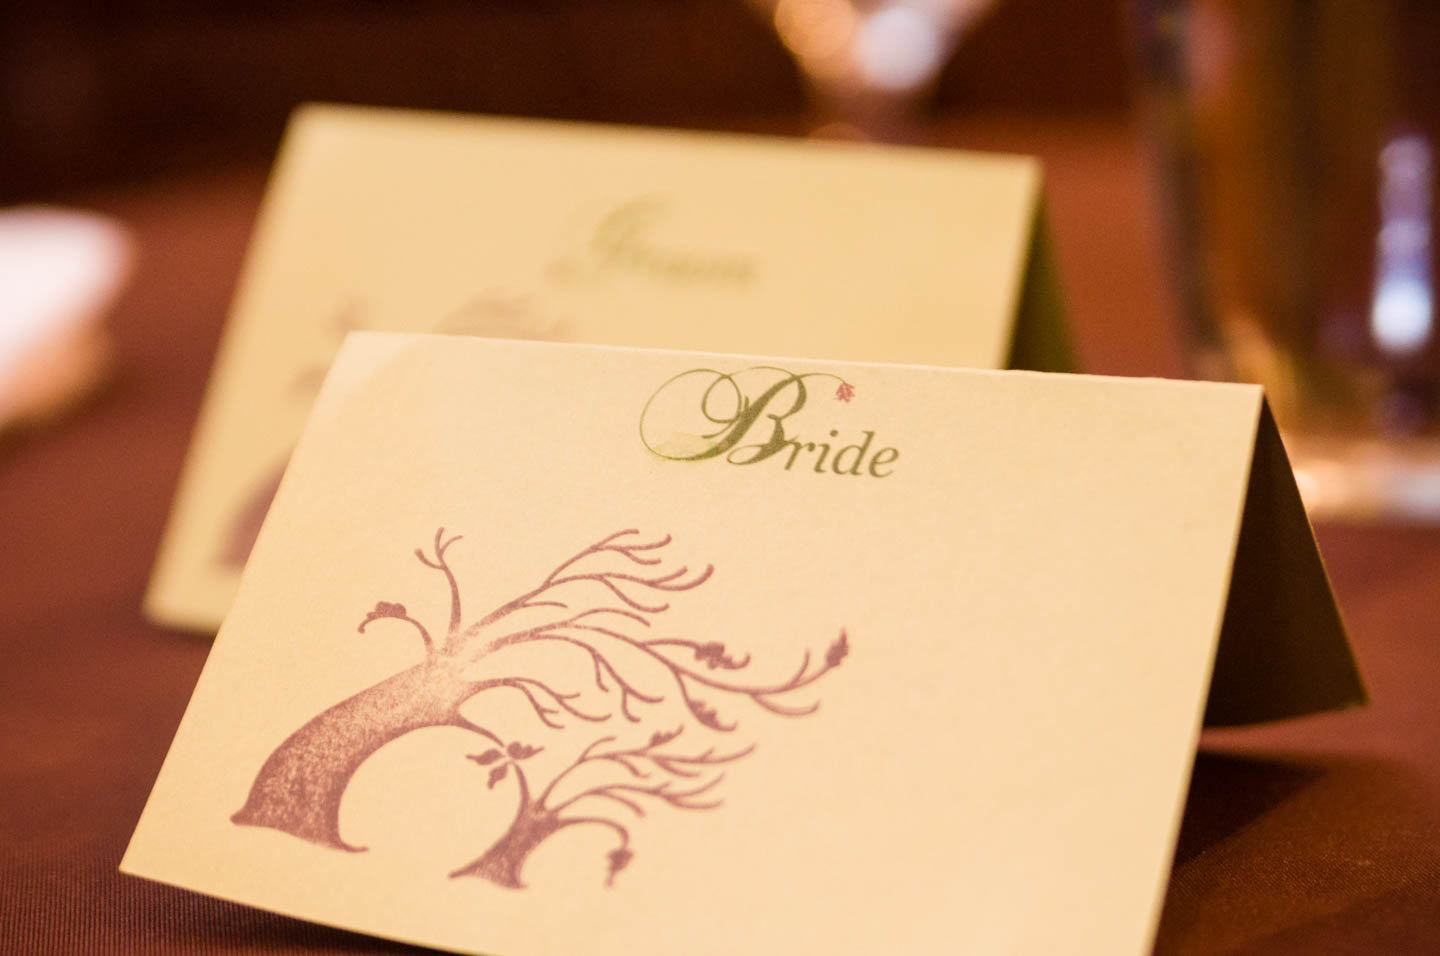 Bride's placemarker